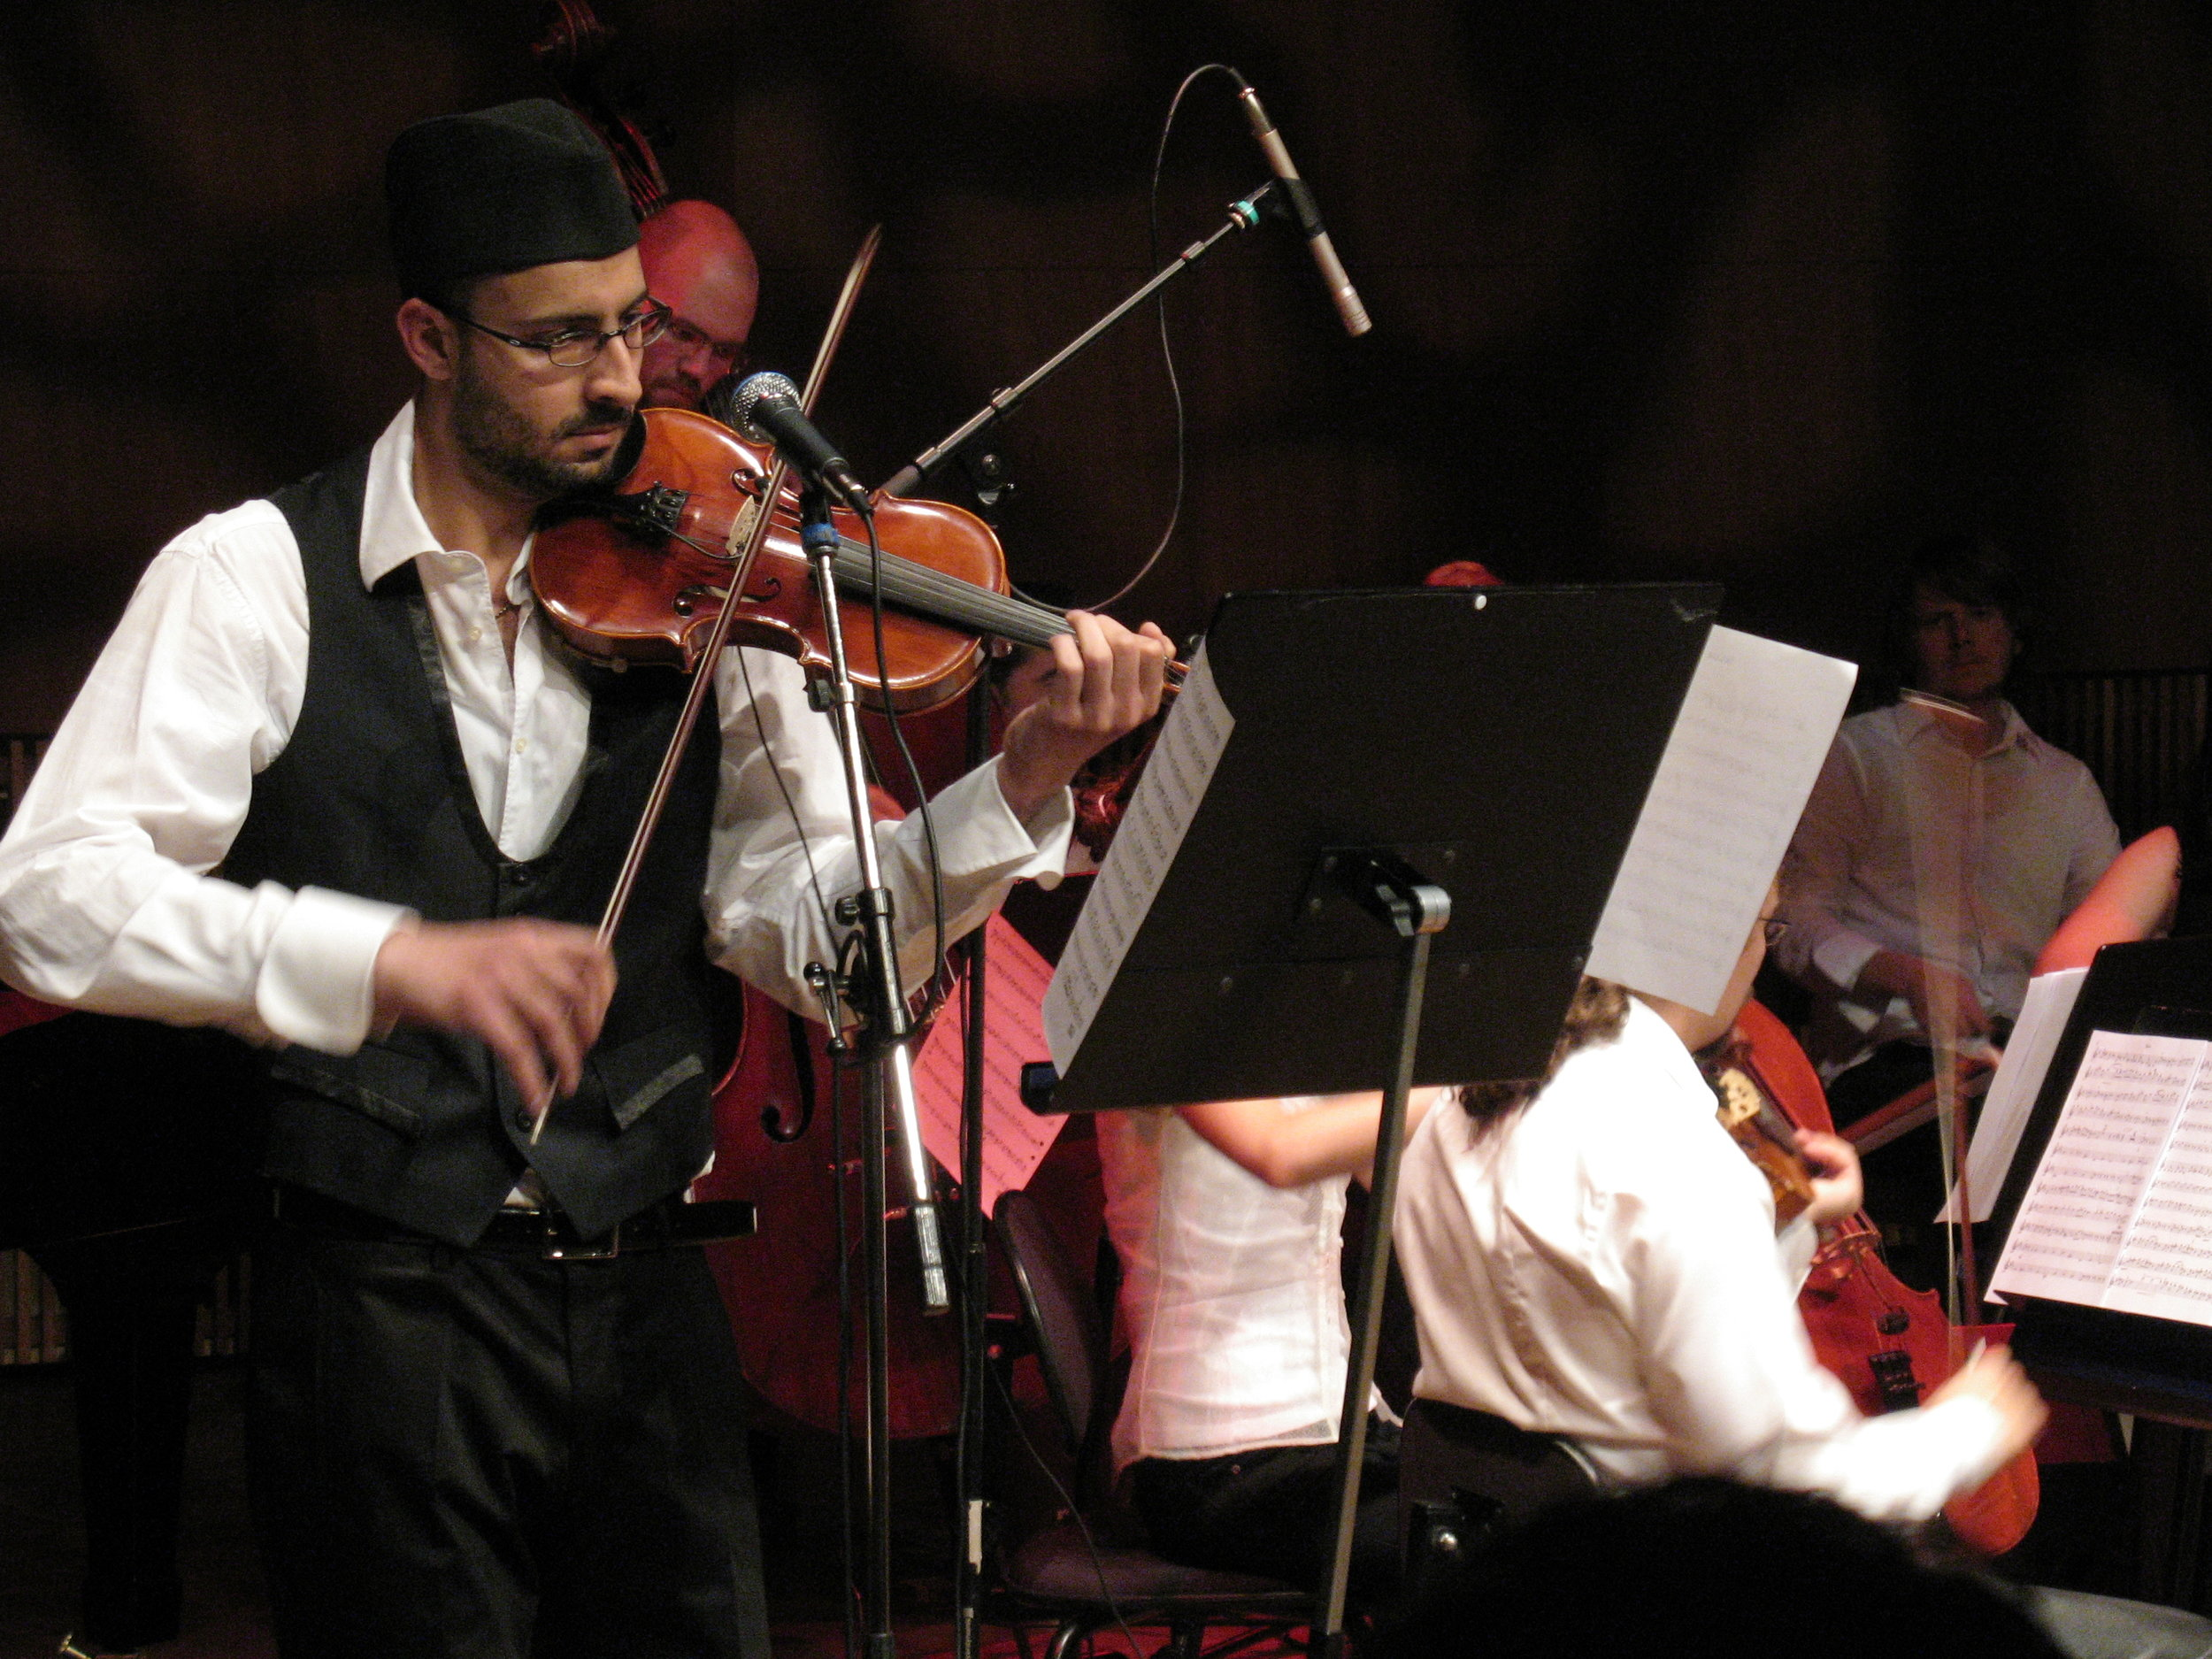 Pictures from the examination concert 001.jpg